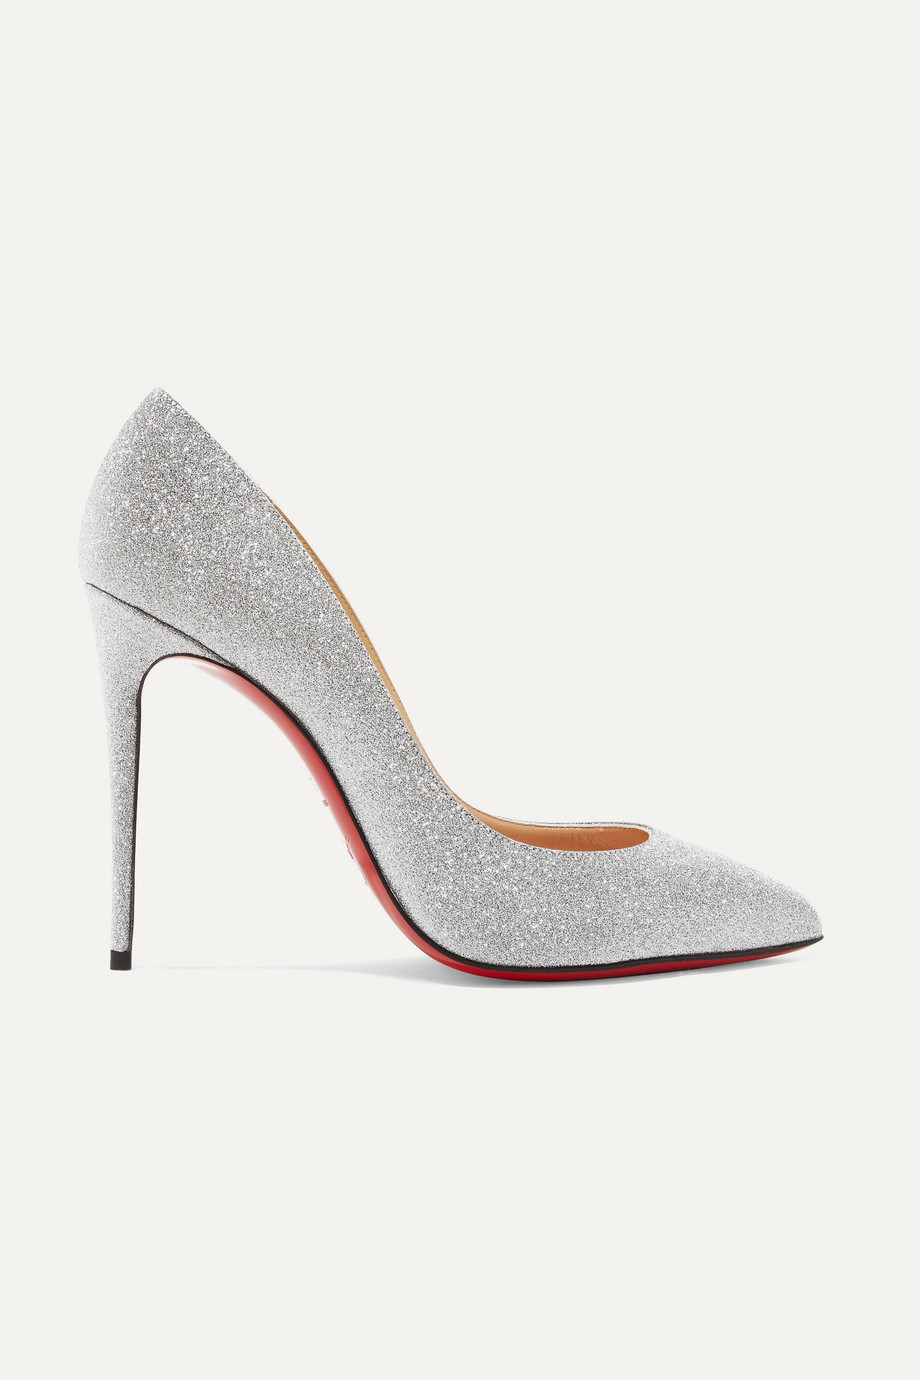 Christian Louboutin Pigalle Follies 100 glittered leather pumps